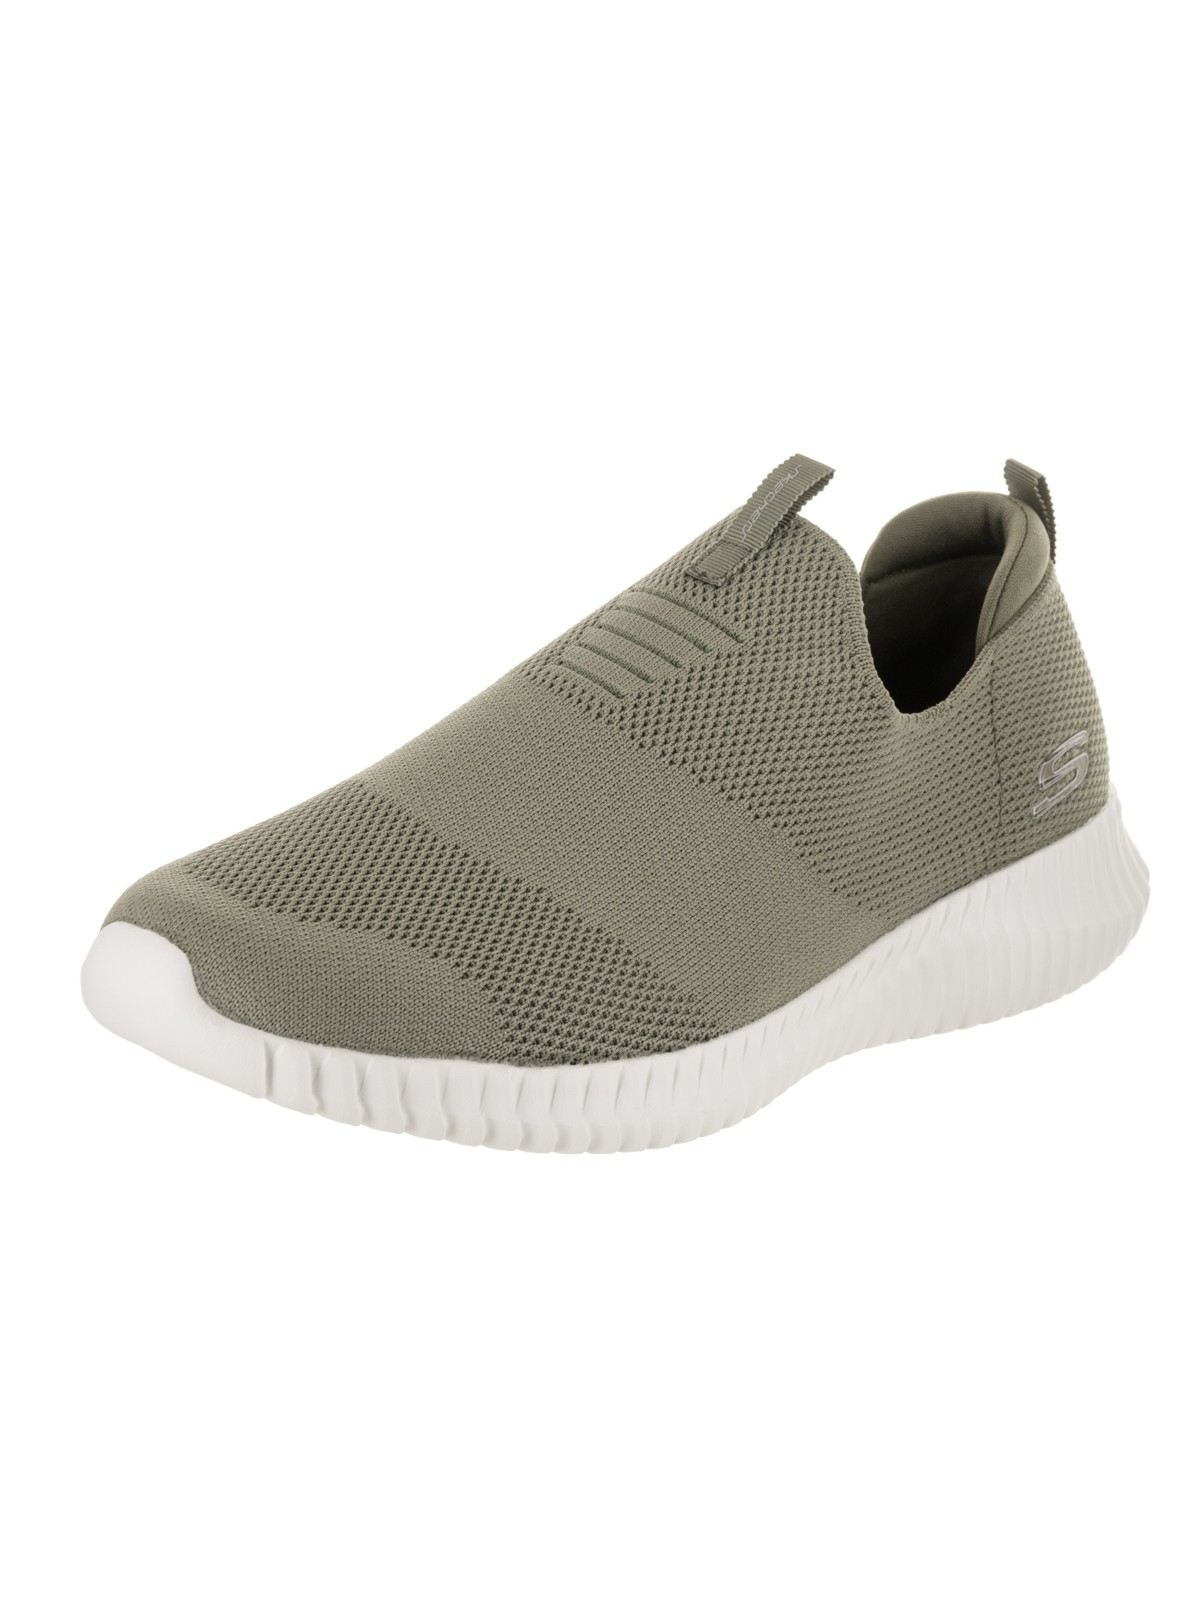 Skechers Men's Elite Flex - Wasik Slip-On Shoe